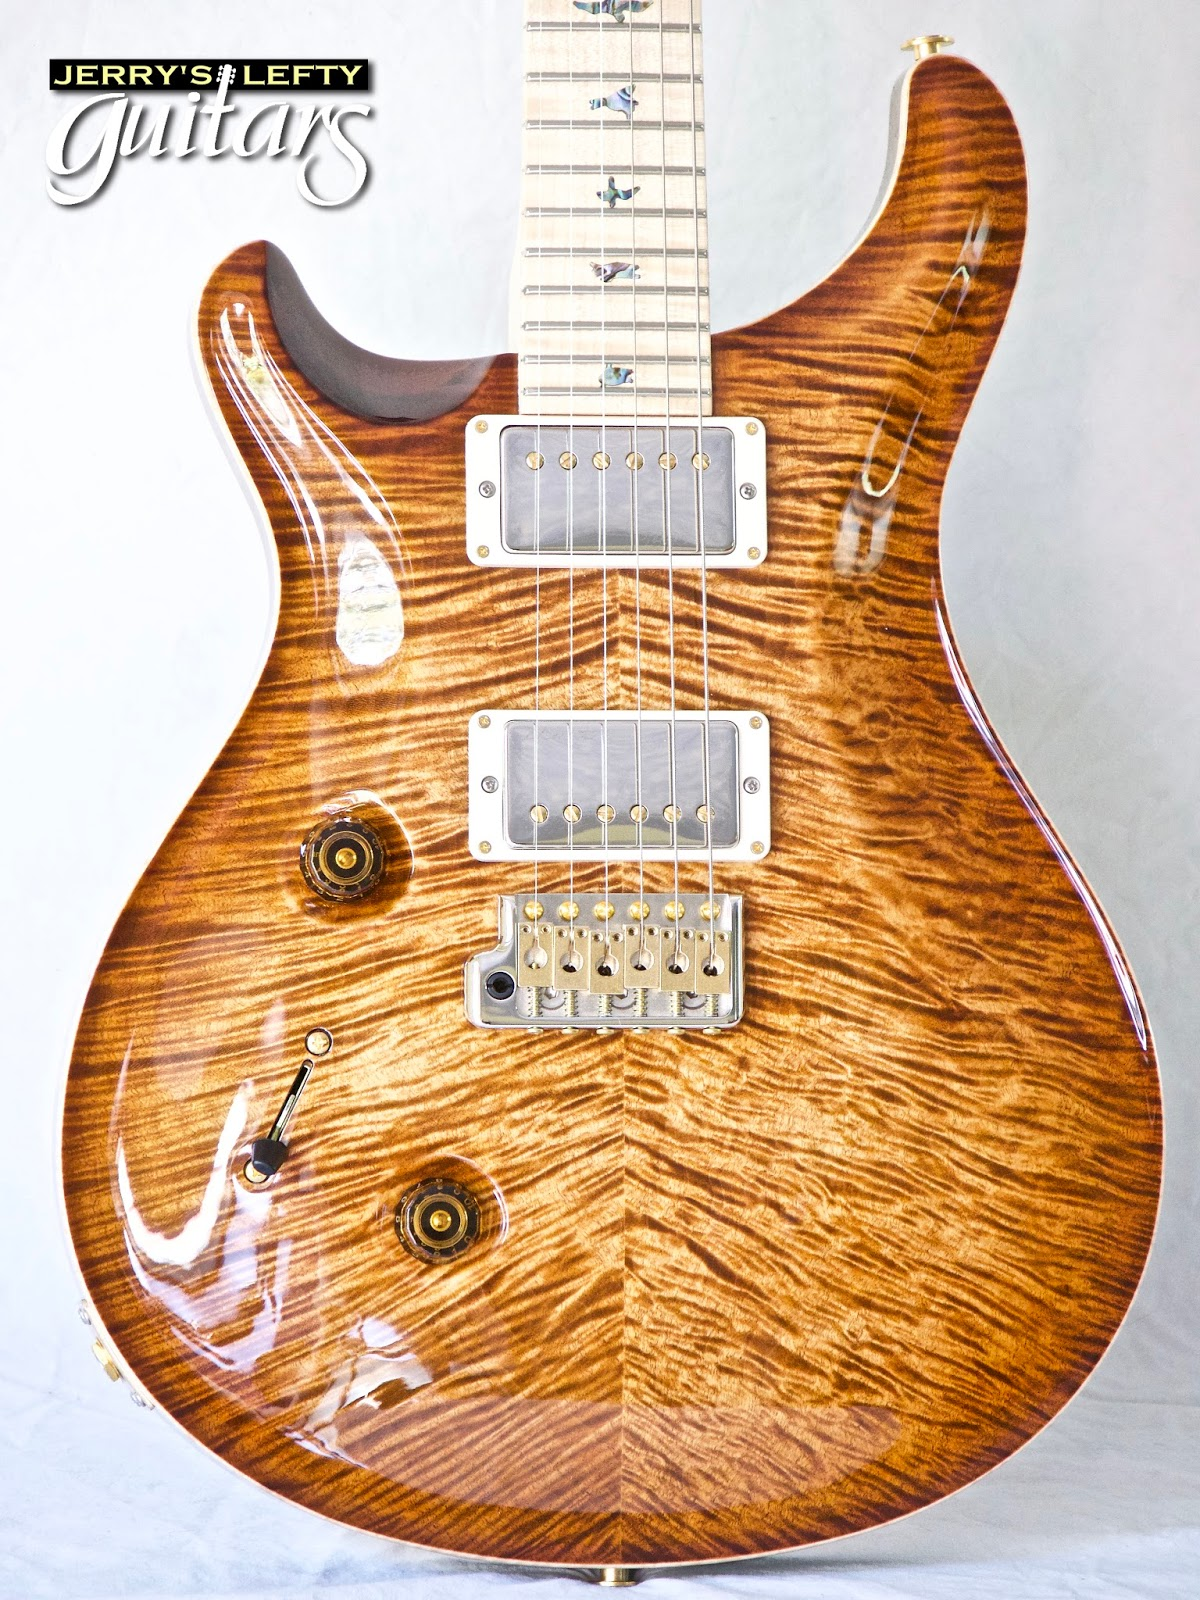 jerry 39 s lefty guitars newest guitar arrivals updated weekly prs custom 24 wood library. Black Bedroom Furniture Sets. Home Design Ideas